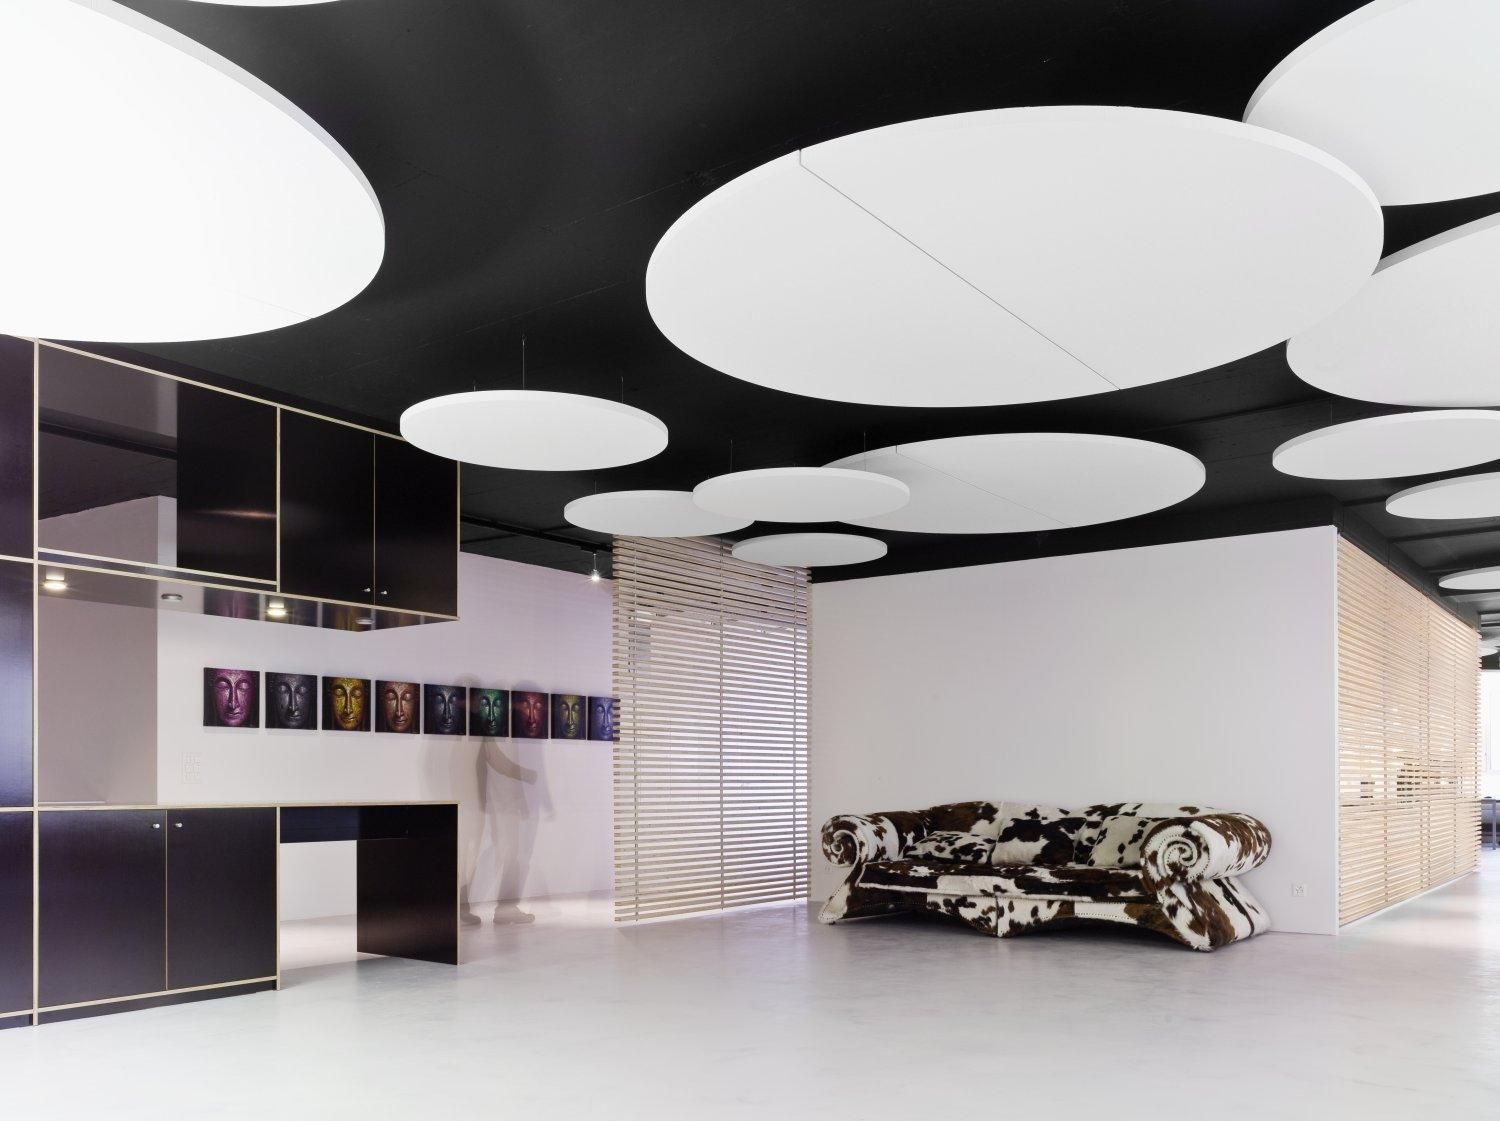 Ecophon ceilling droogbouw pinterest ceilings are these the sound absorbent clouds glass wool acoustic ceiling clouds ecophon solo circle xl ecophon solo line by saint gobain ecophon dailygadgetfo Images